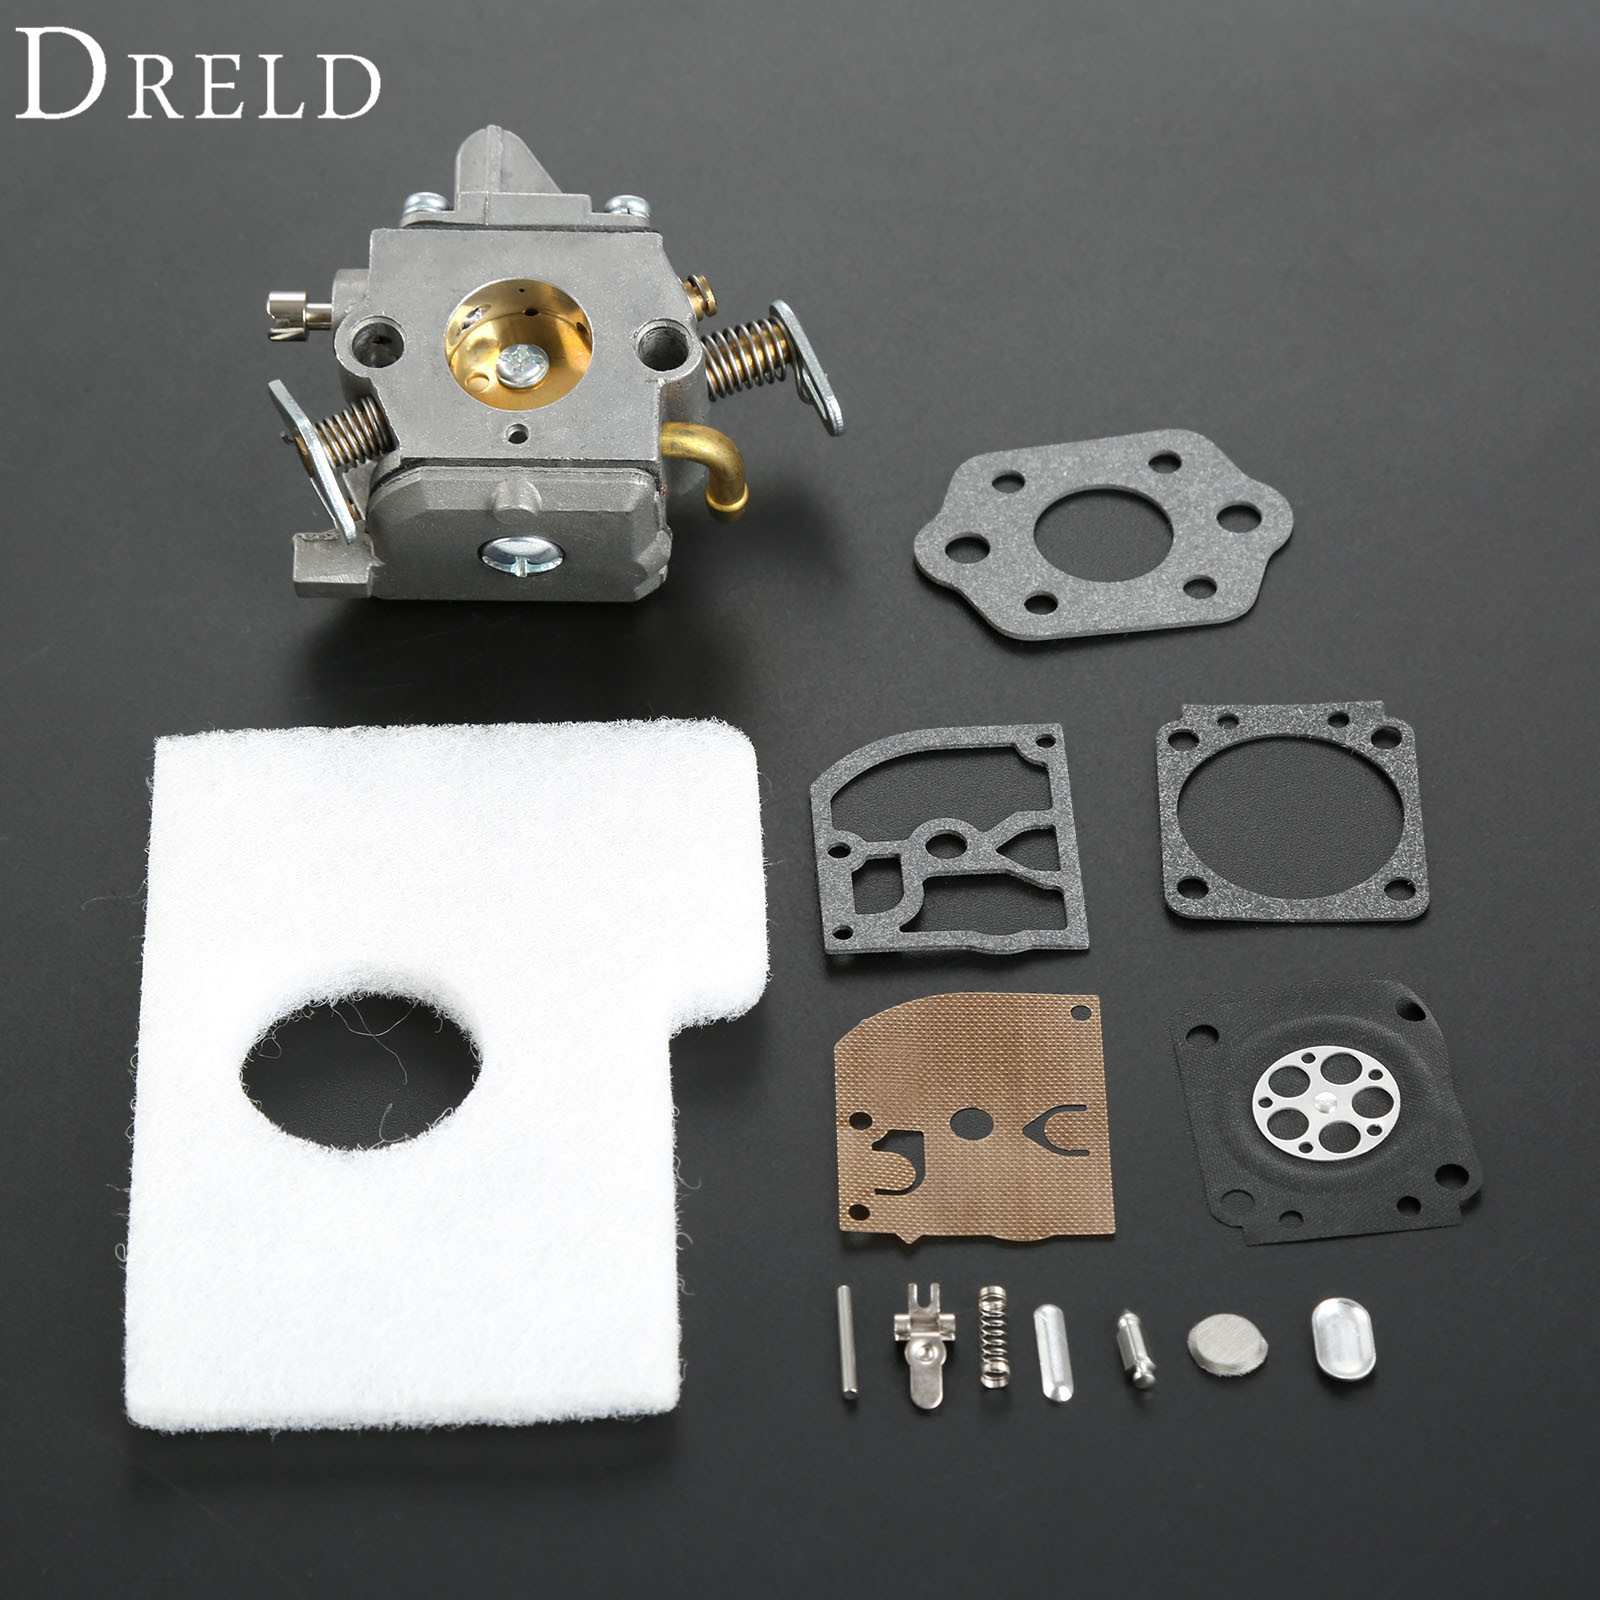 где купить DRELD Chainsaws Carburetor Air Filter Repair Rebuild Kit For STIHL MS170 MS180 MS 170 180 017 018 Chainsaw Zama C1Q-S57B 1130 по лучшей цене